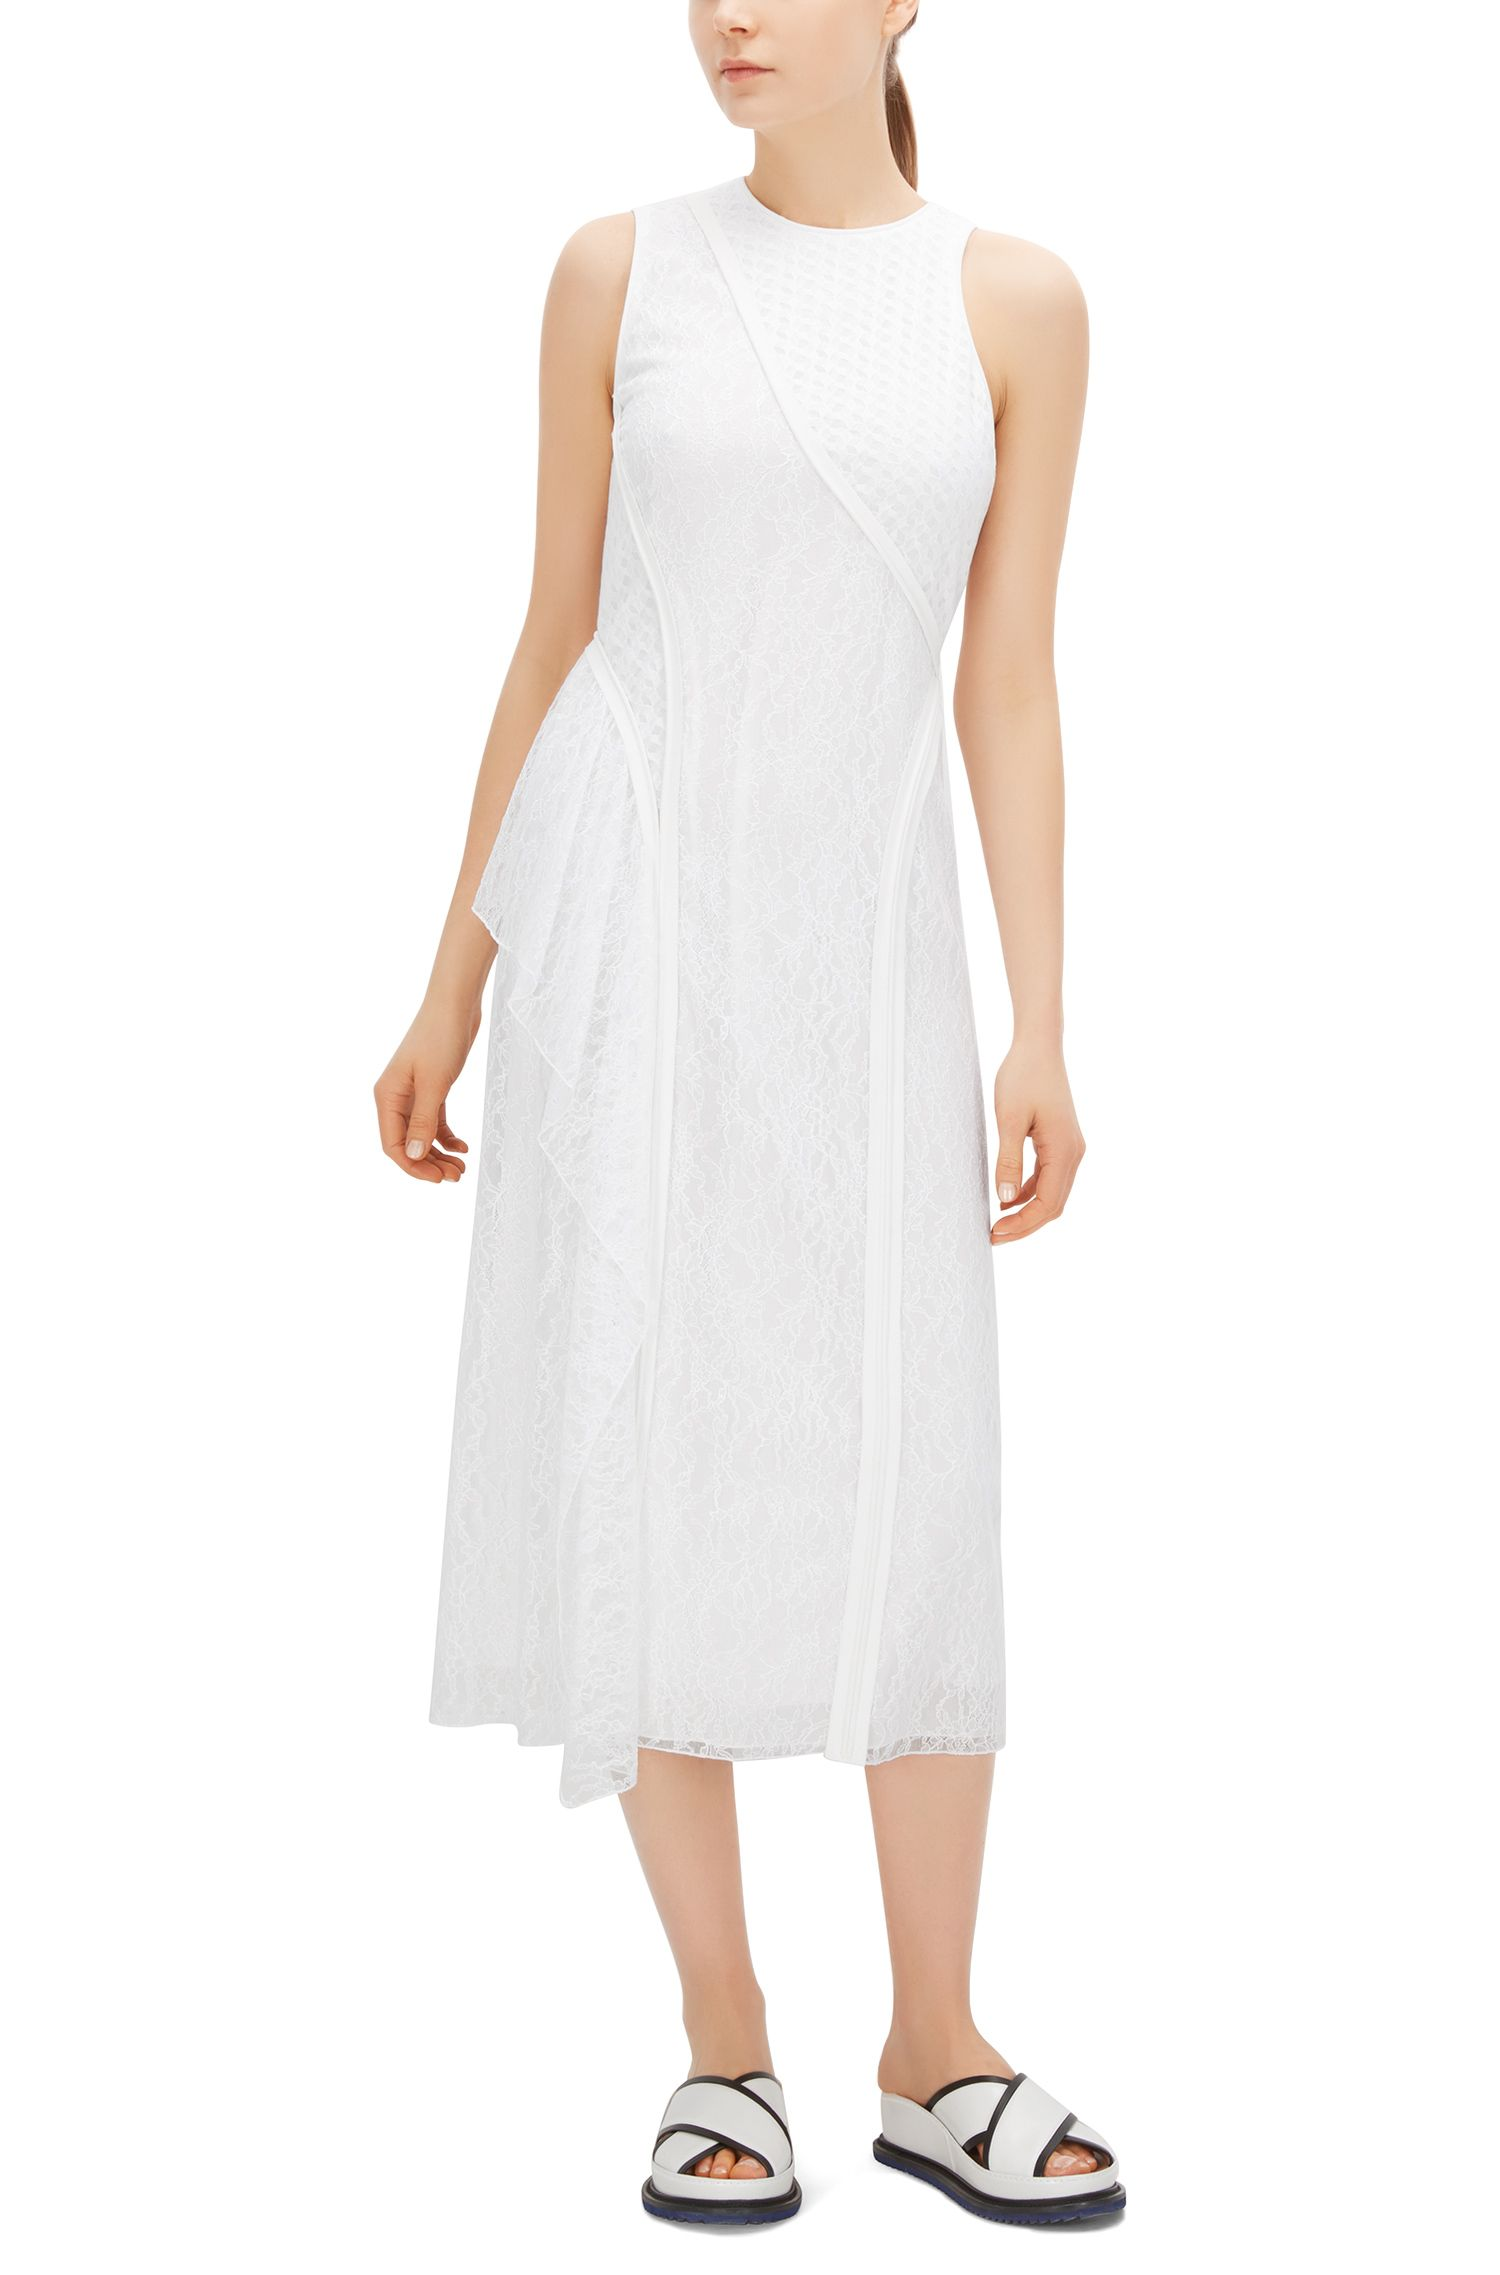 Runway Edition Cotton Blend Dress | Danisa